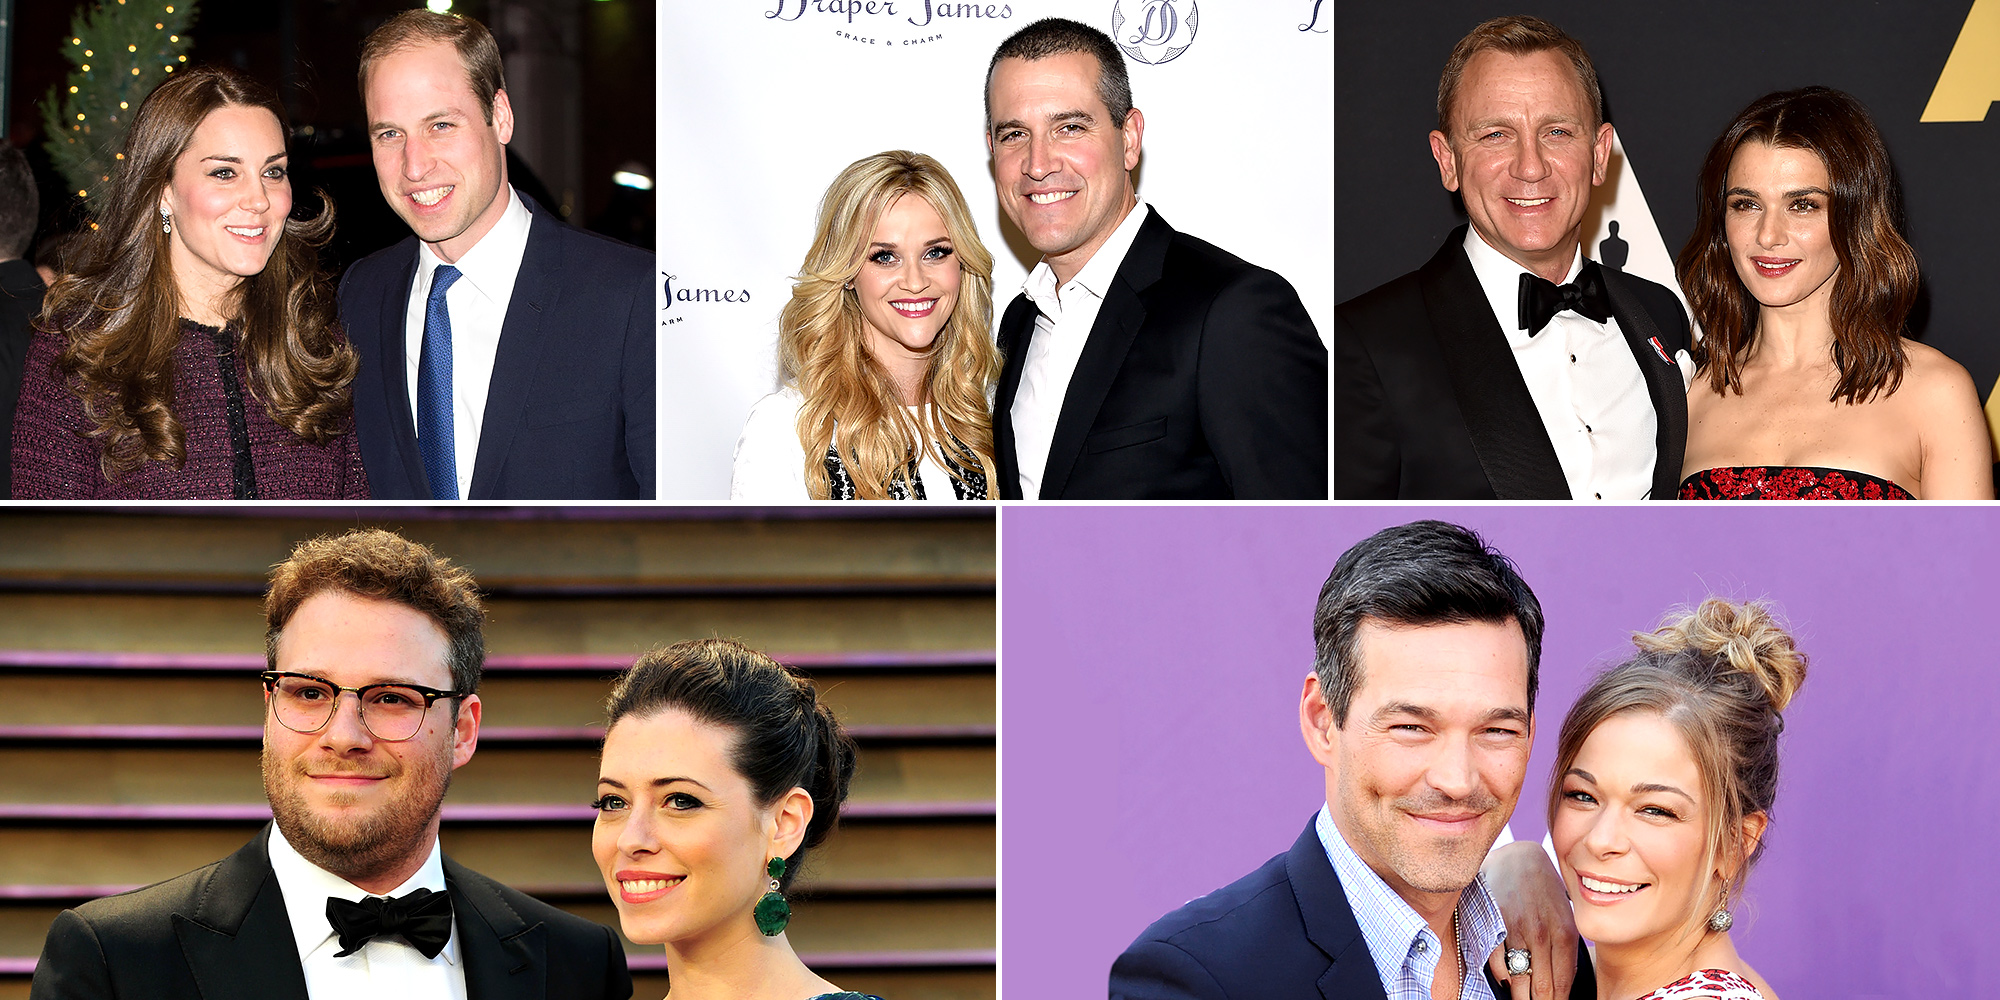 Kate Middleton, Prince William, Reese Witherspoon, Jim Toth, Daniel Craig, Rachel Weisz, Seth Rogen, LeAnn Rimes celebrating wedding anniversaries in 2016